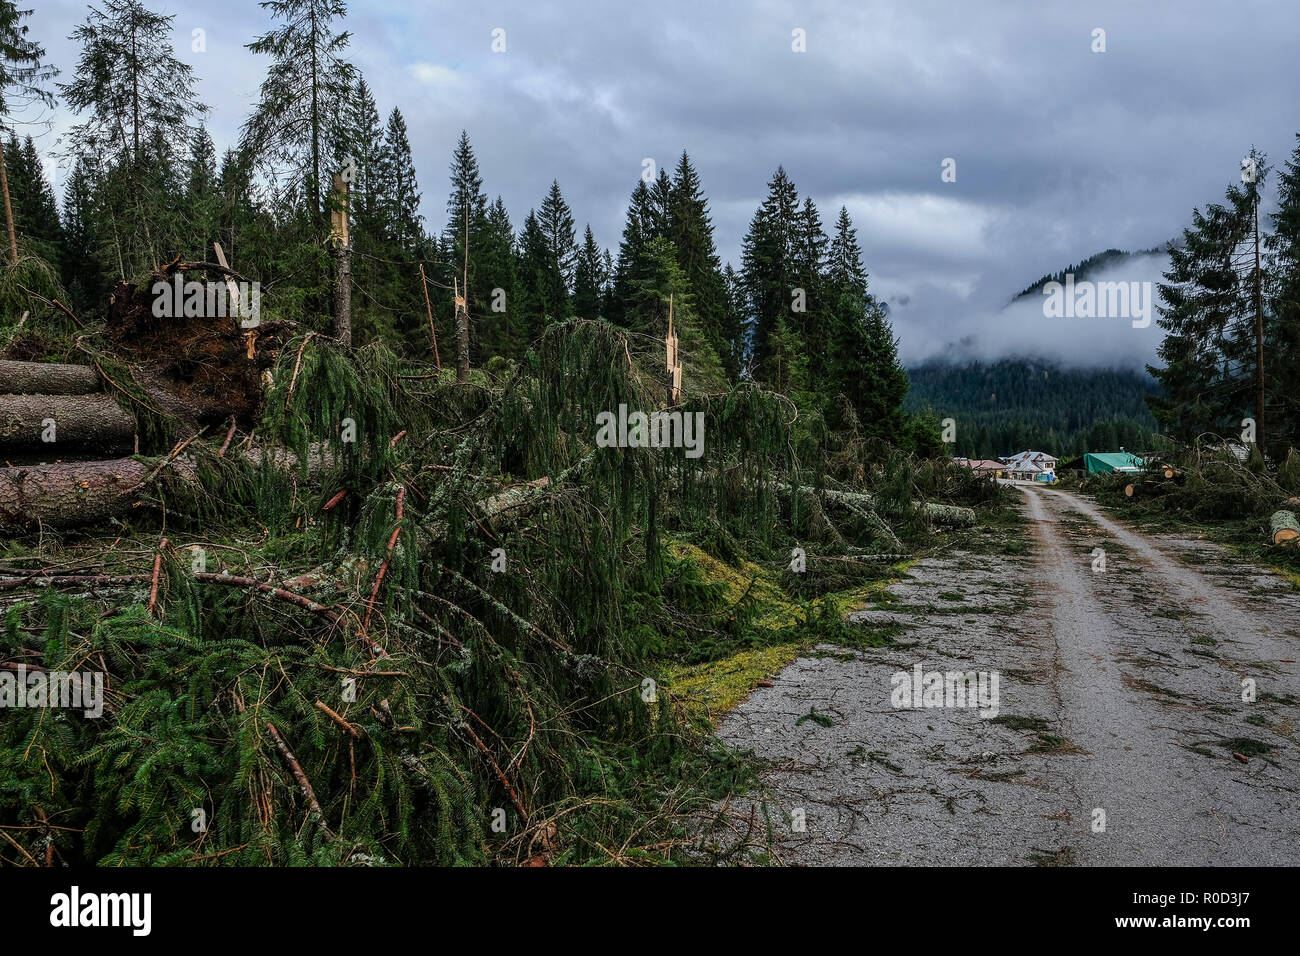 Belluno, Italy. 03th November, 2018. View of Val Visdende, in the foreground the trees cut down by the flood Belluno, Italy. © Stefano Mazzola / Awakening / Alamy Live News - Stock Image